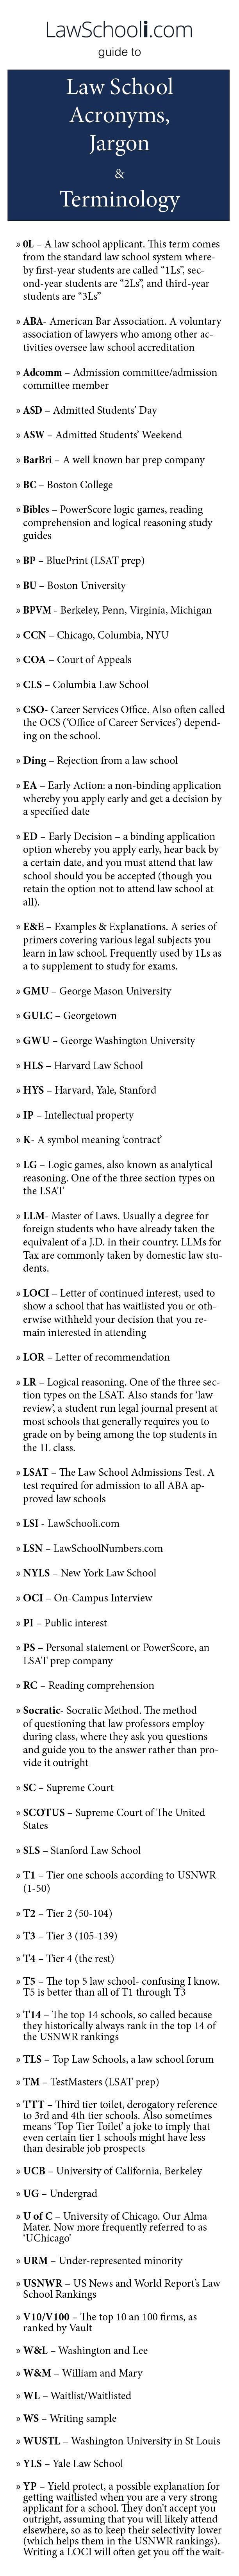 21 best lsat images on pinterest law school lsat prep and lsat law school acronyms jargon and terminology malvernweather Gallery